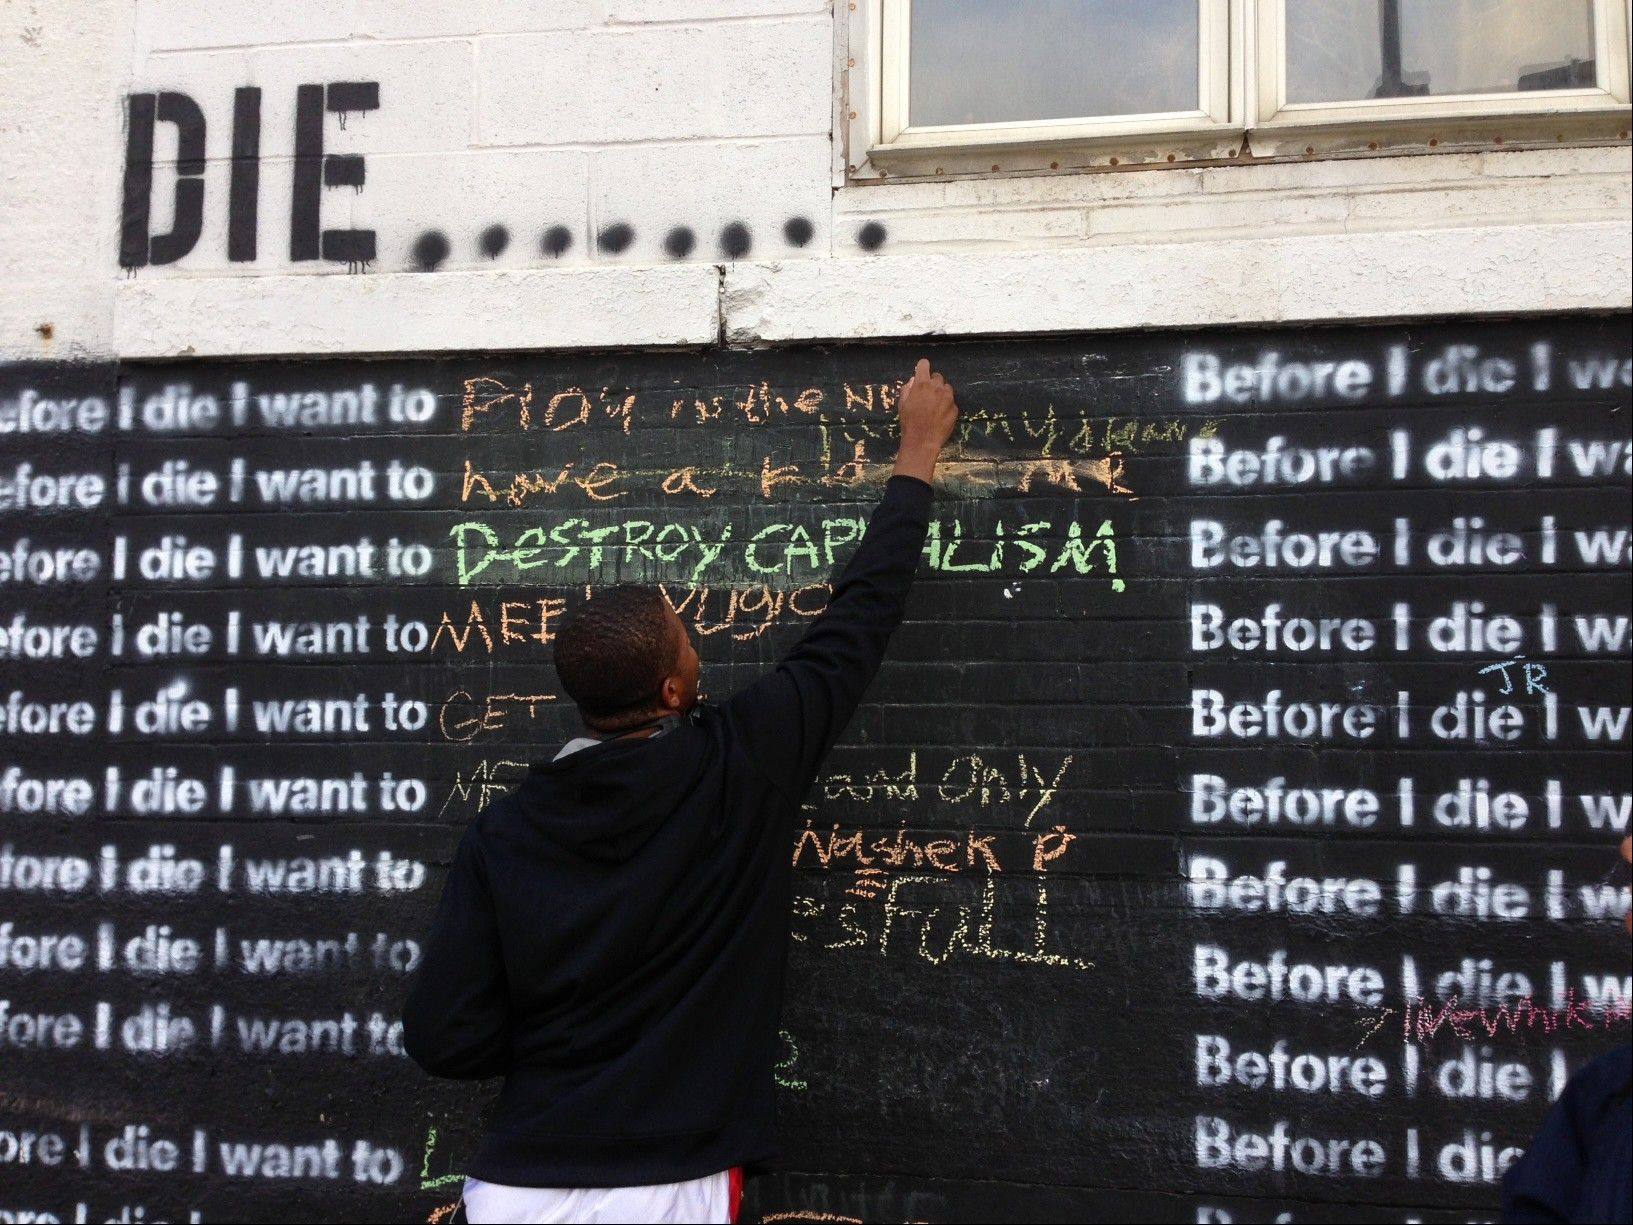 "Nyquis Turner, 16, writes ""Play in the NFL"" on a wall in Syracuse, N.Y., that invites passers-by to complete the sentence: ""Before I die, I want to..."" The global phenomenon started in 2011, when artist Candy Chang created the first wall on an abandoned house in her New Orleans neighborhood. More than 400 walls have gone up in the United States and more than 60 other countries."